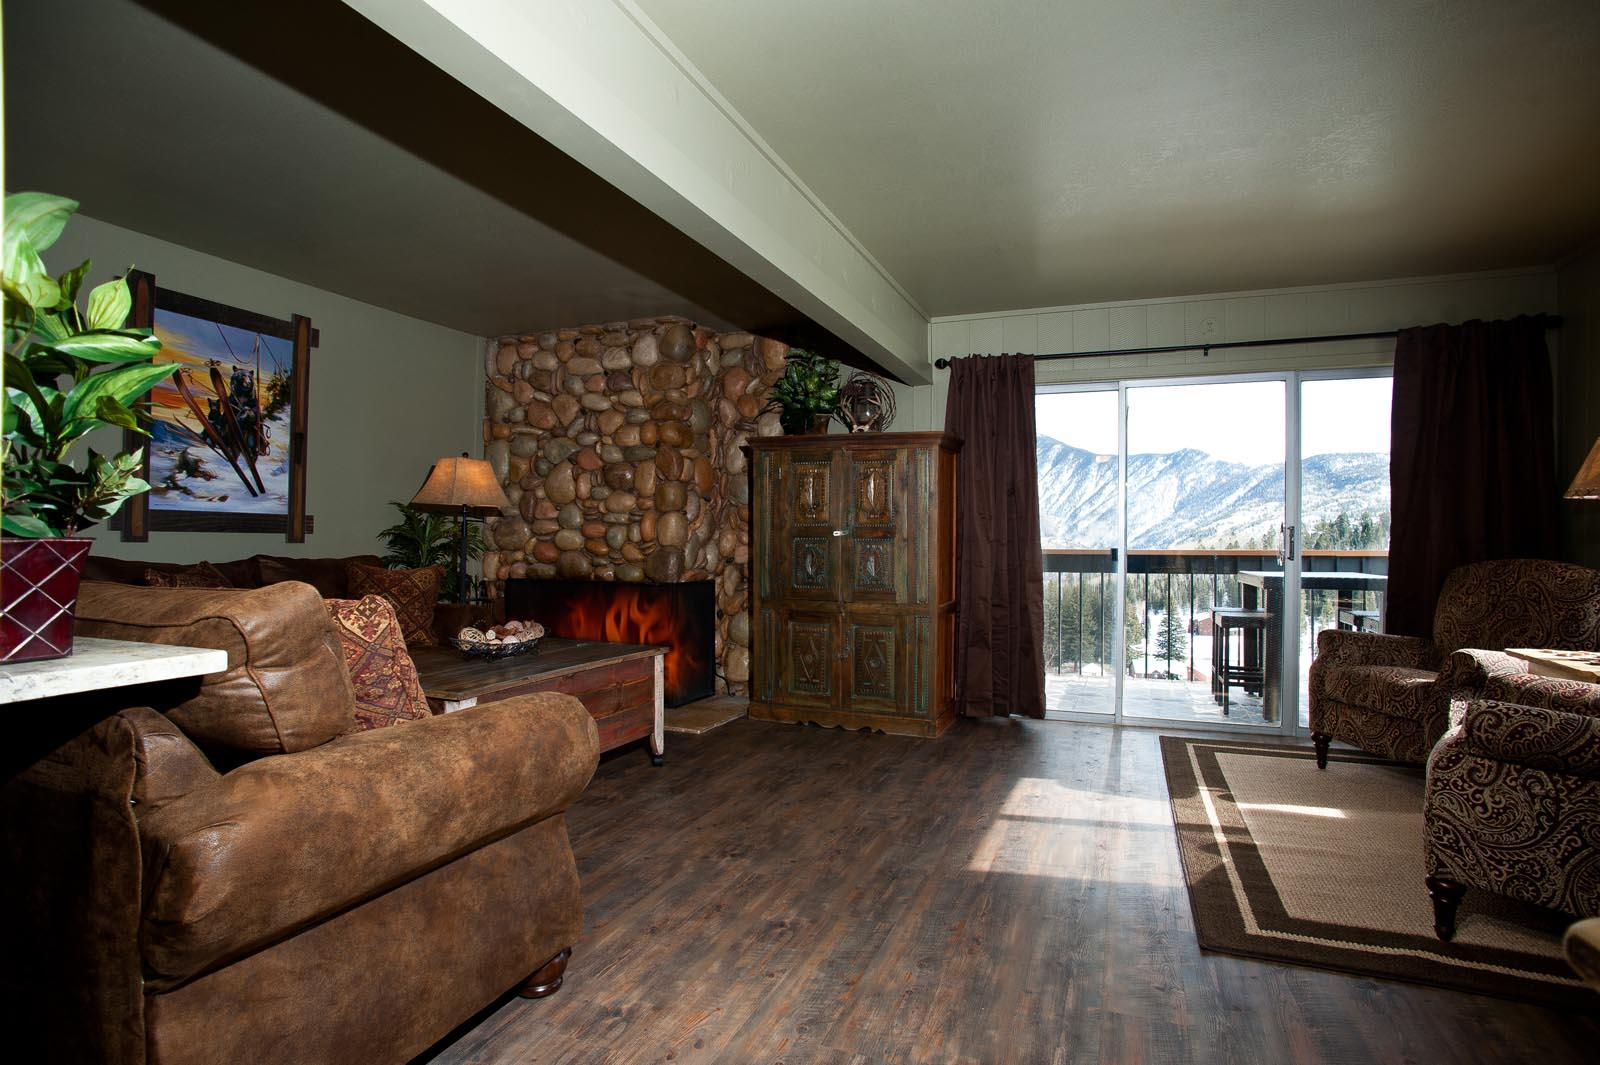 Property Image 1 - True Ski in/Ski Out - Recently Remodeled - Amazing Views